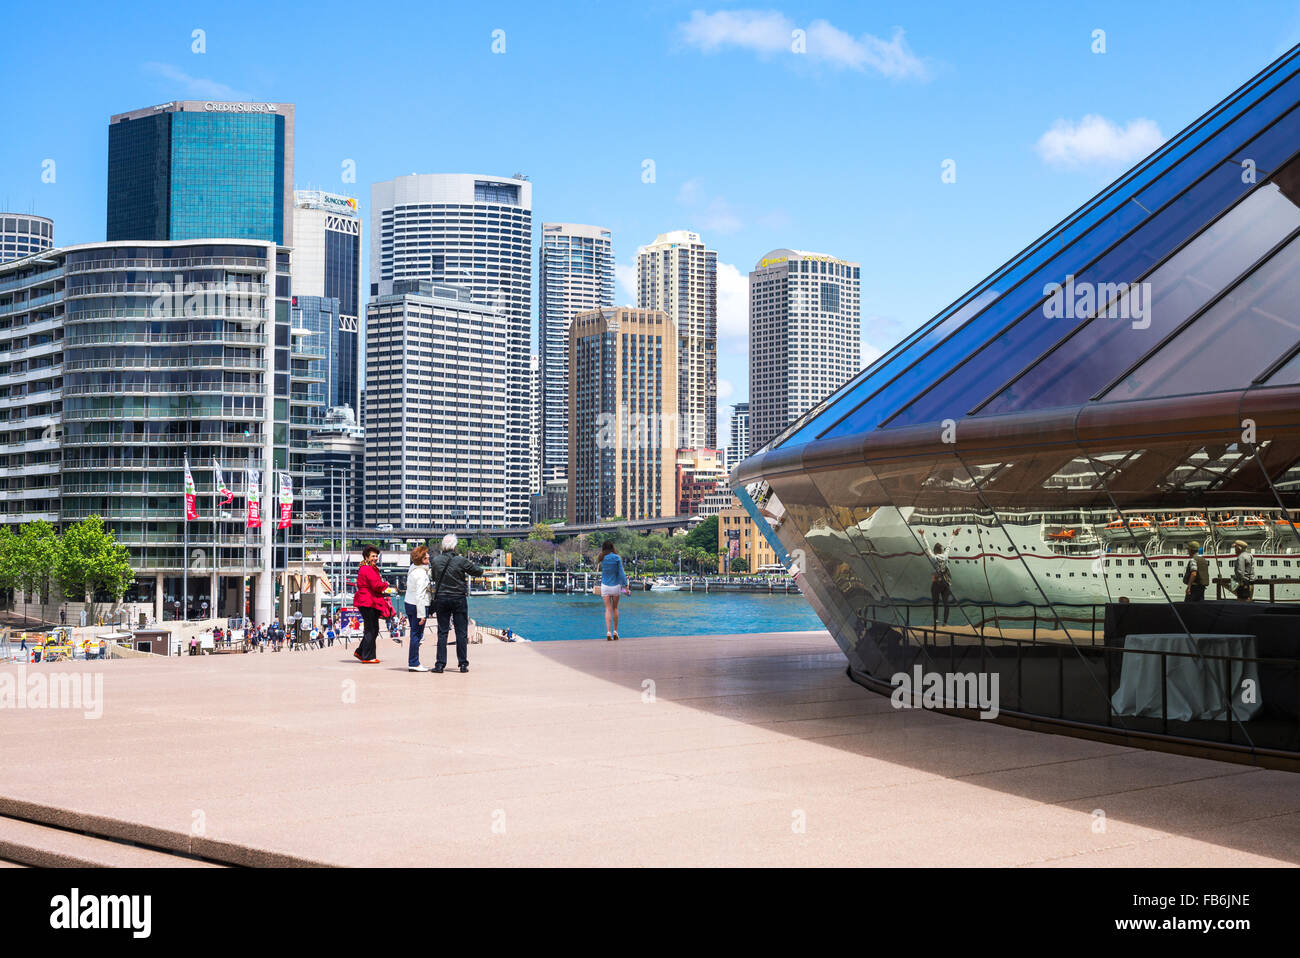 Australia, Sydney, tourists on the flight of steps of the Opera House Stock Photo